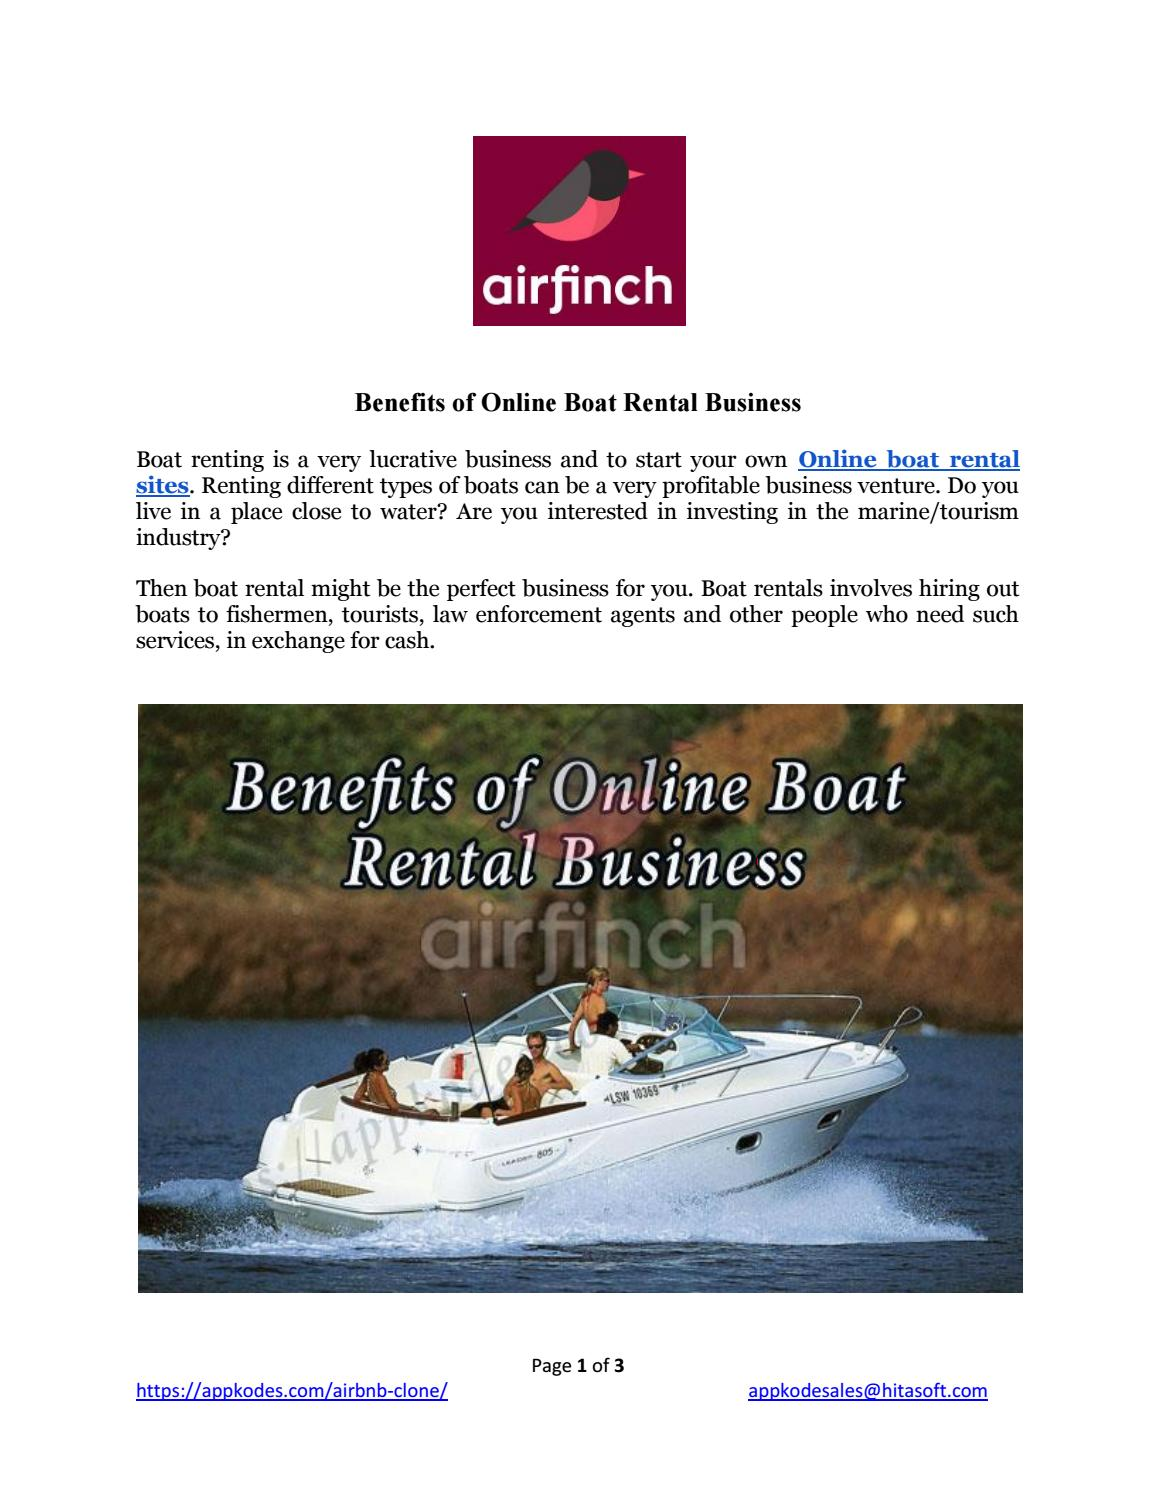 Benefits of online boat rental business by Appkodes - issuu